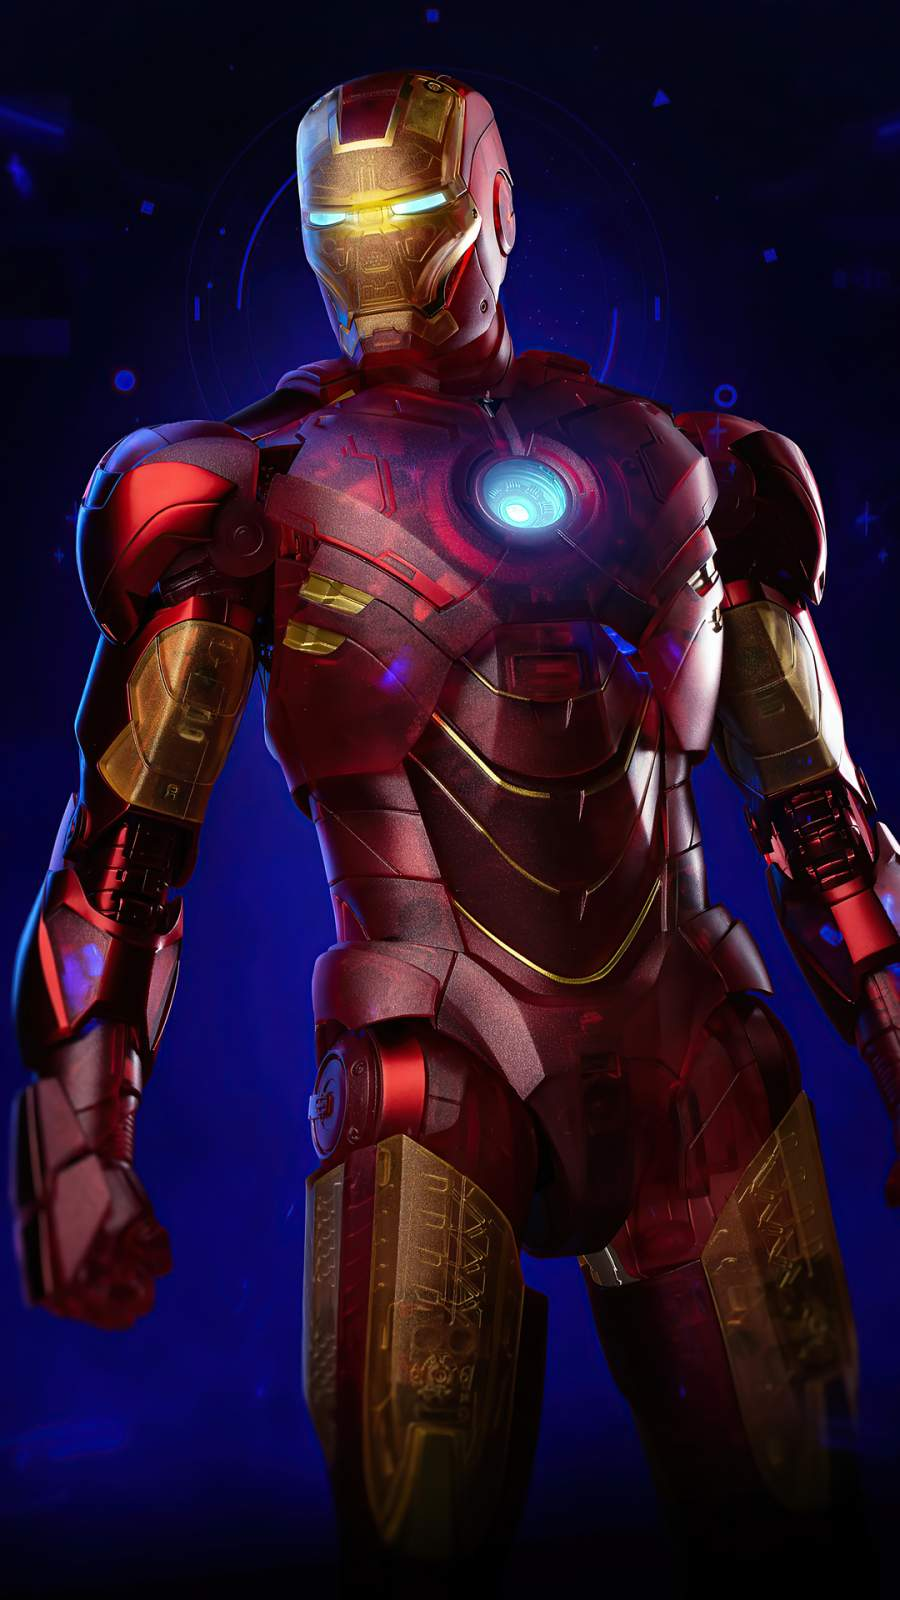 Iron Man New Armor Design